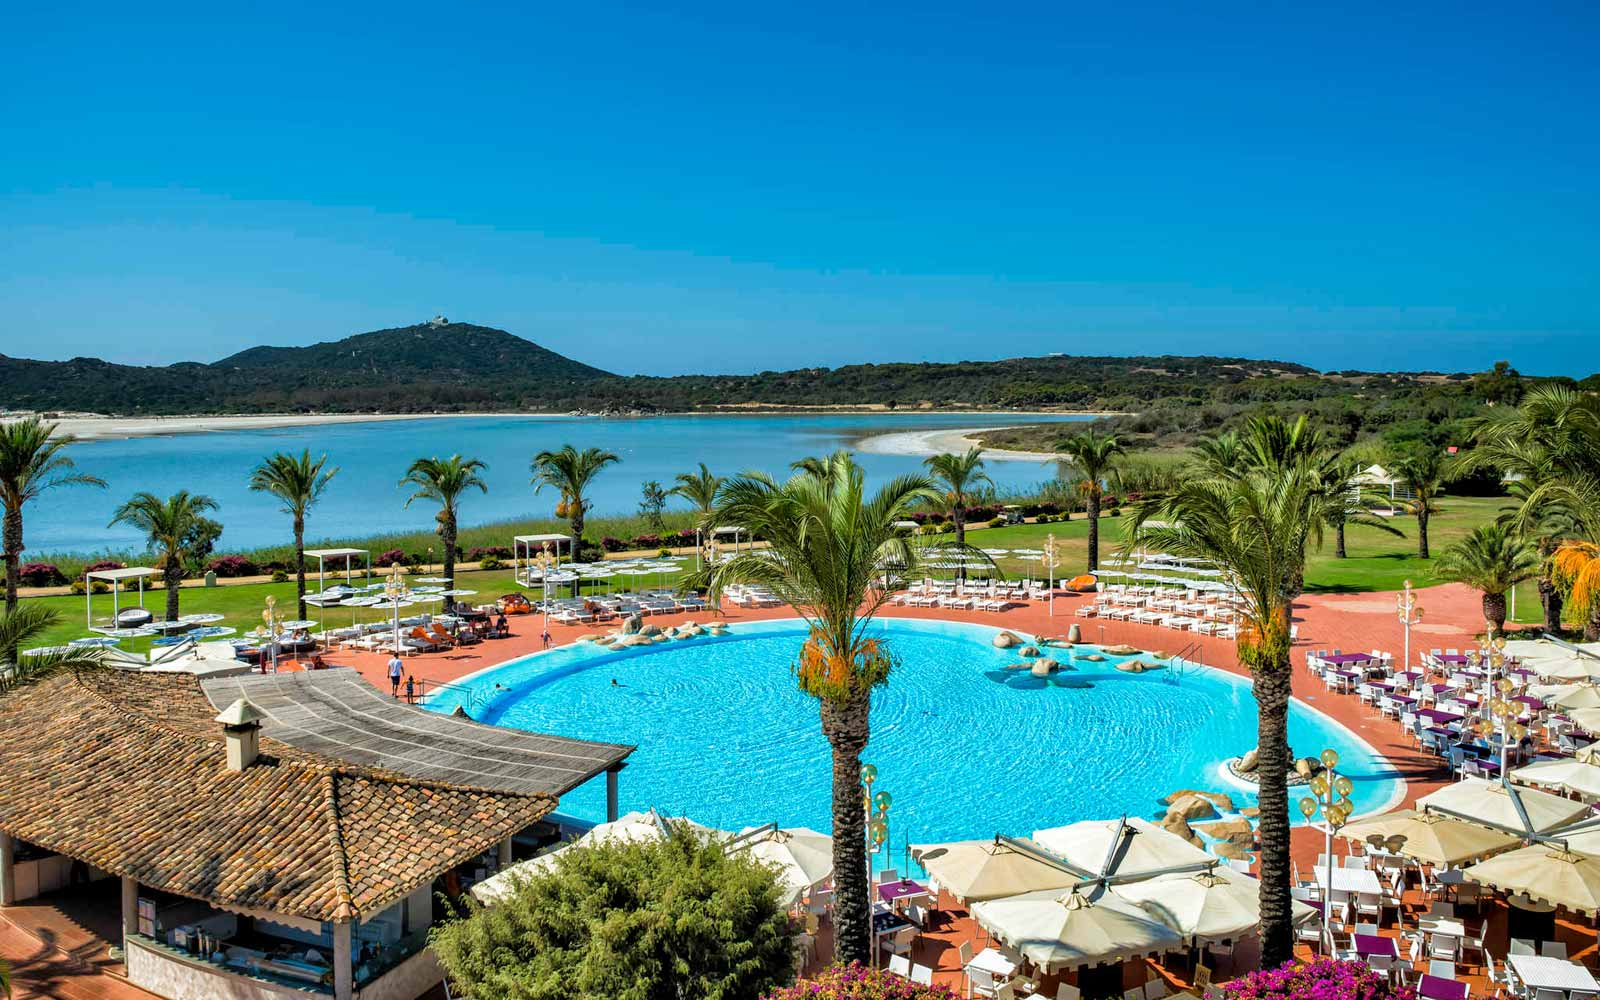 Pool and panoramic view at the Pullman Timi Ama Sardegna